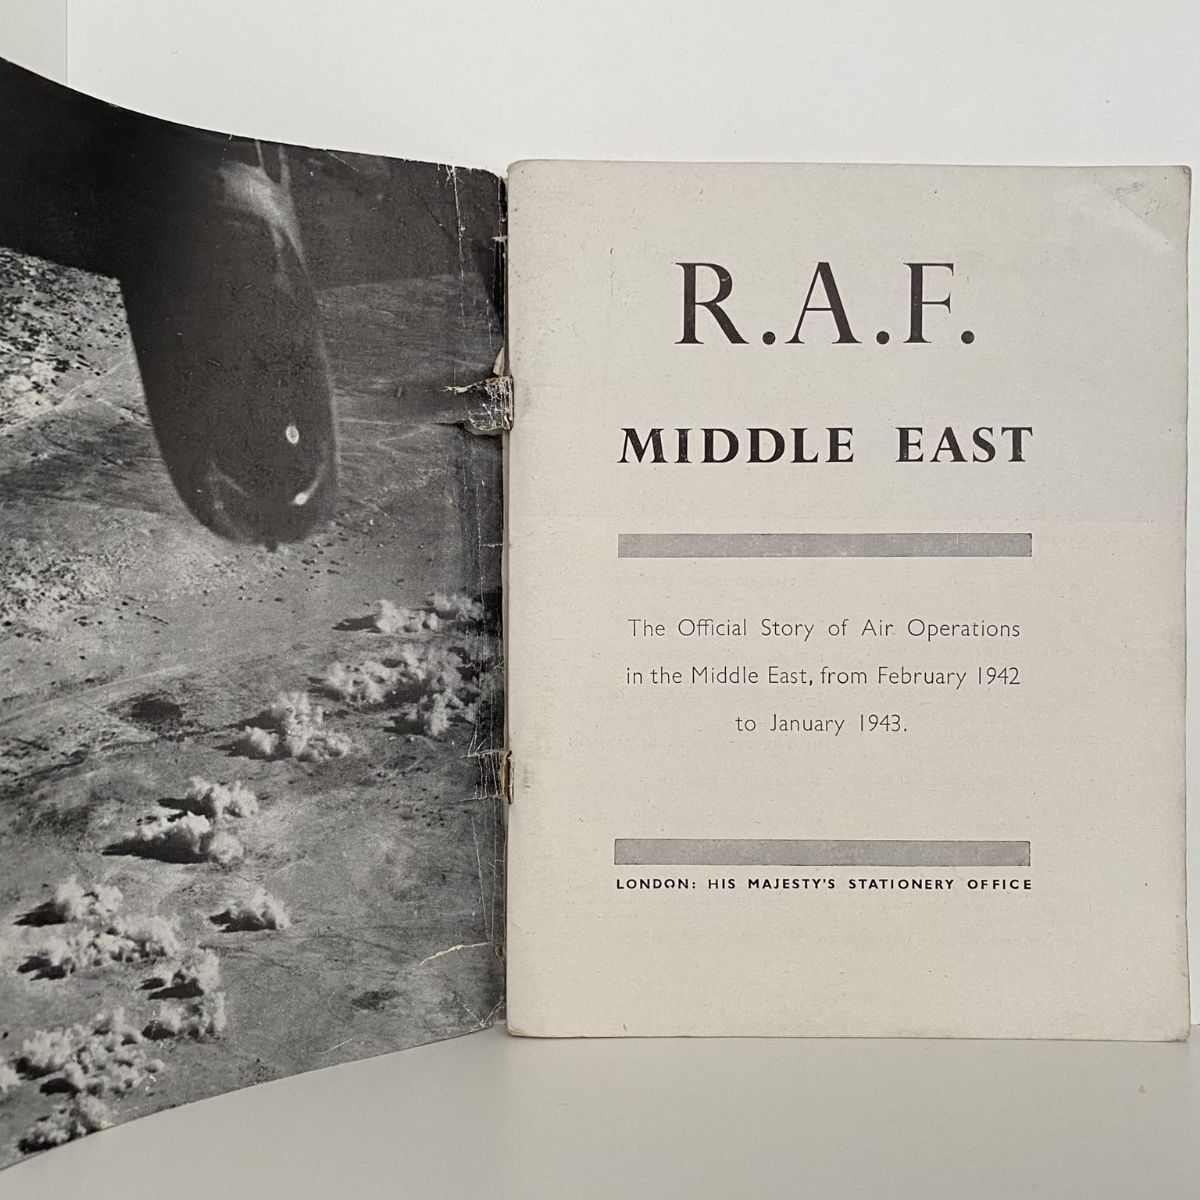 R.A.F Middle East: The Story of Air Operations in the Middle East 1942-1943